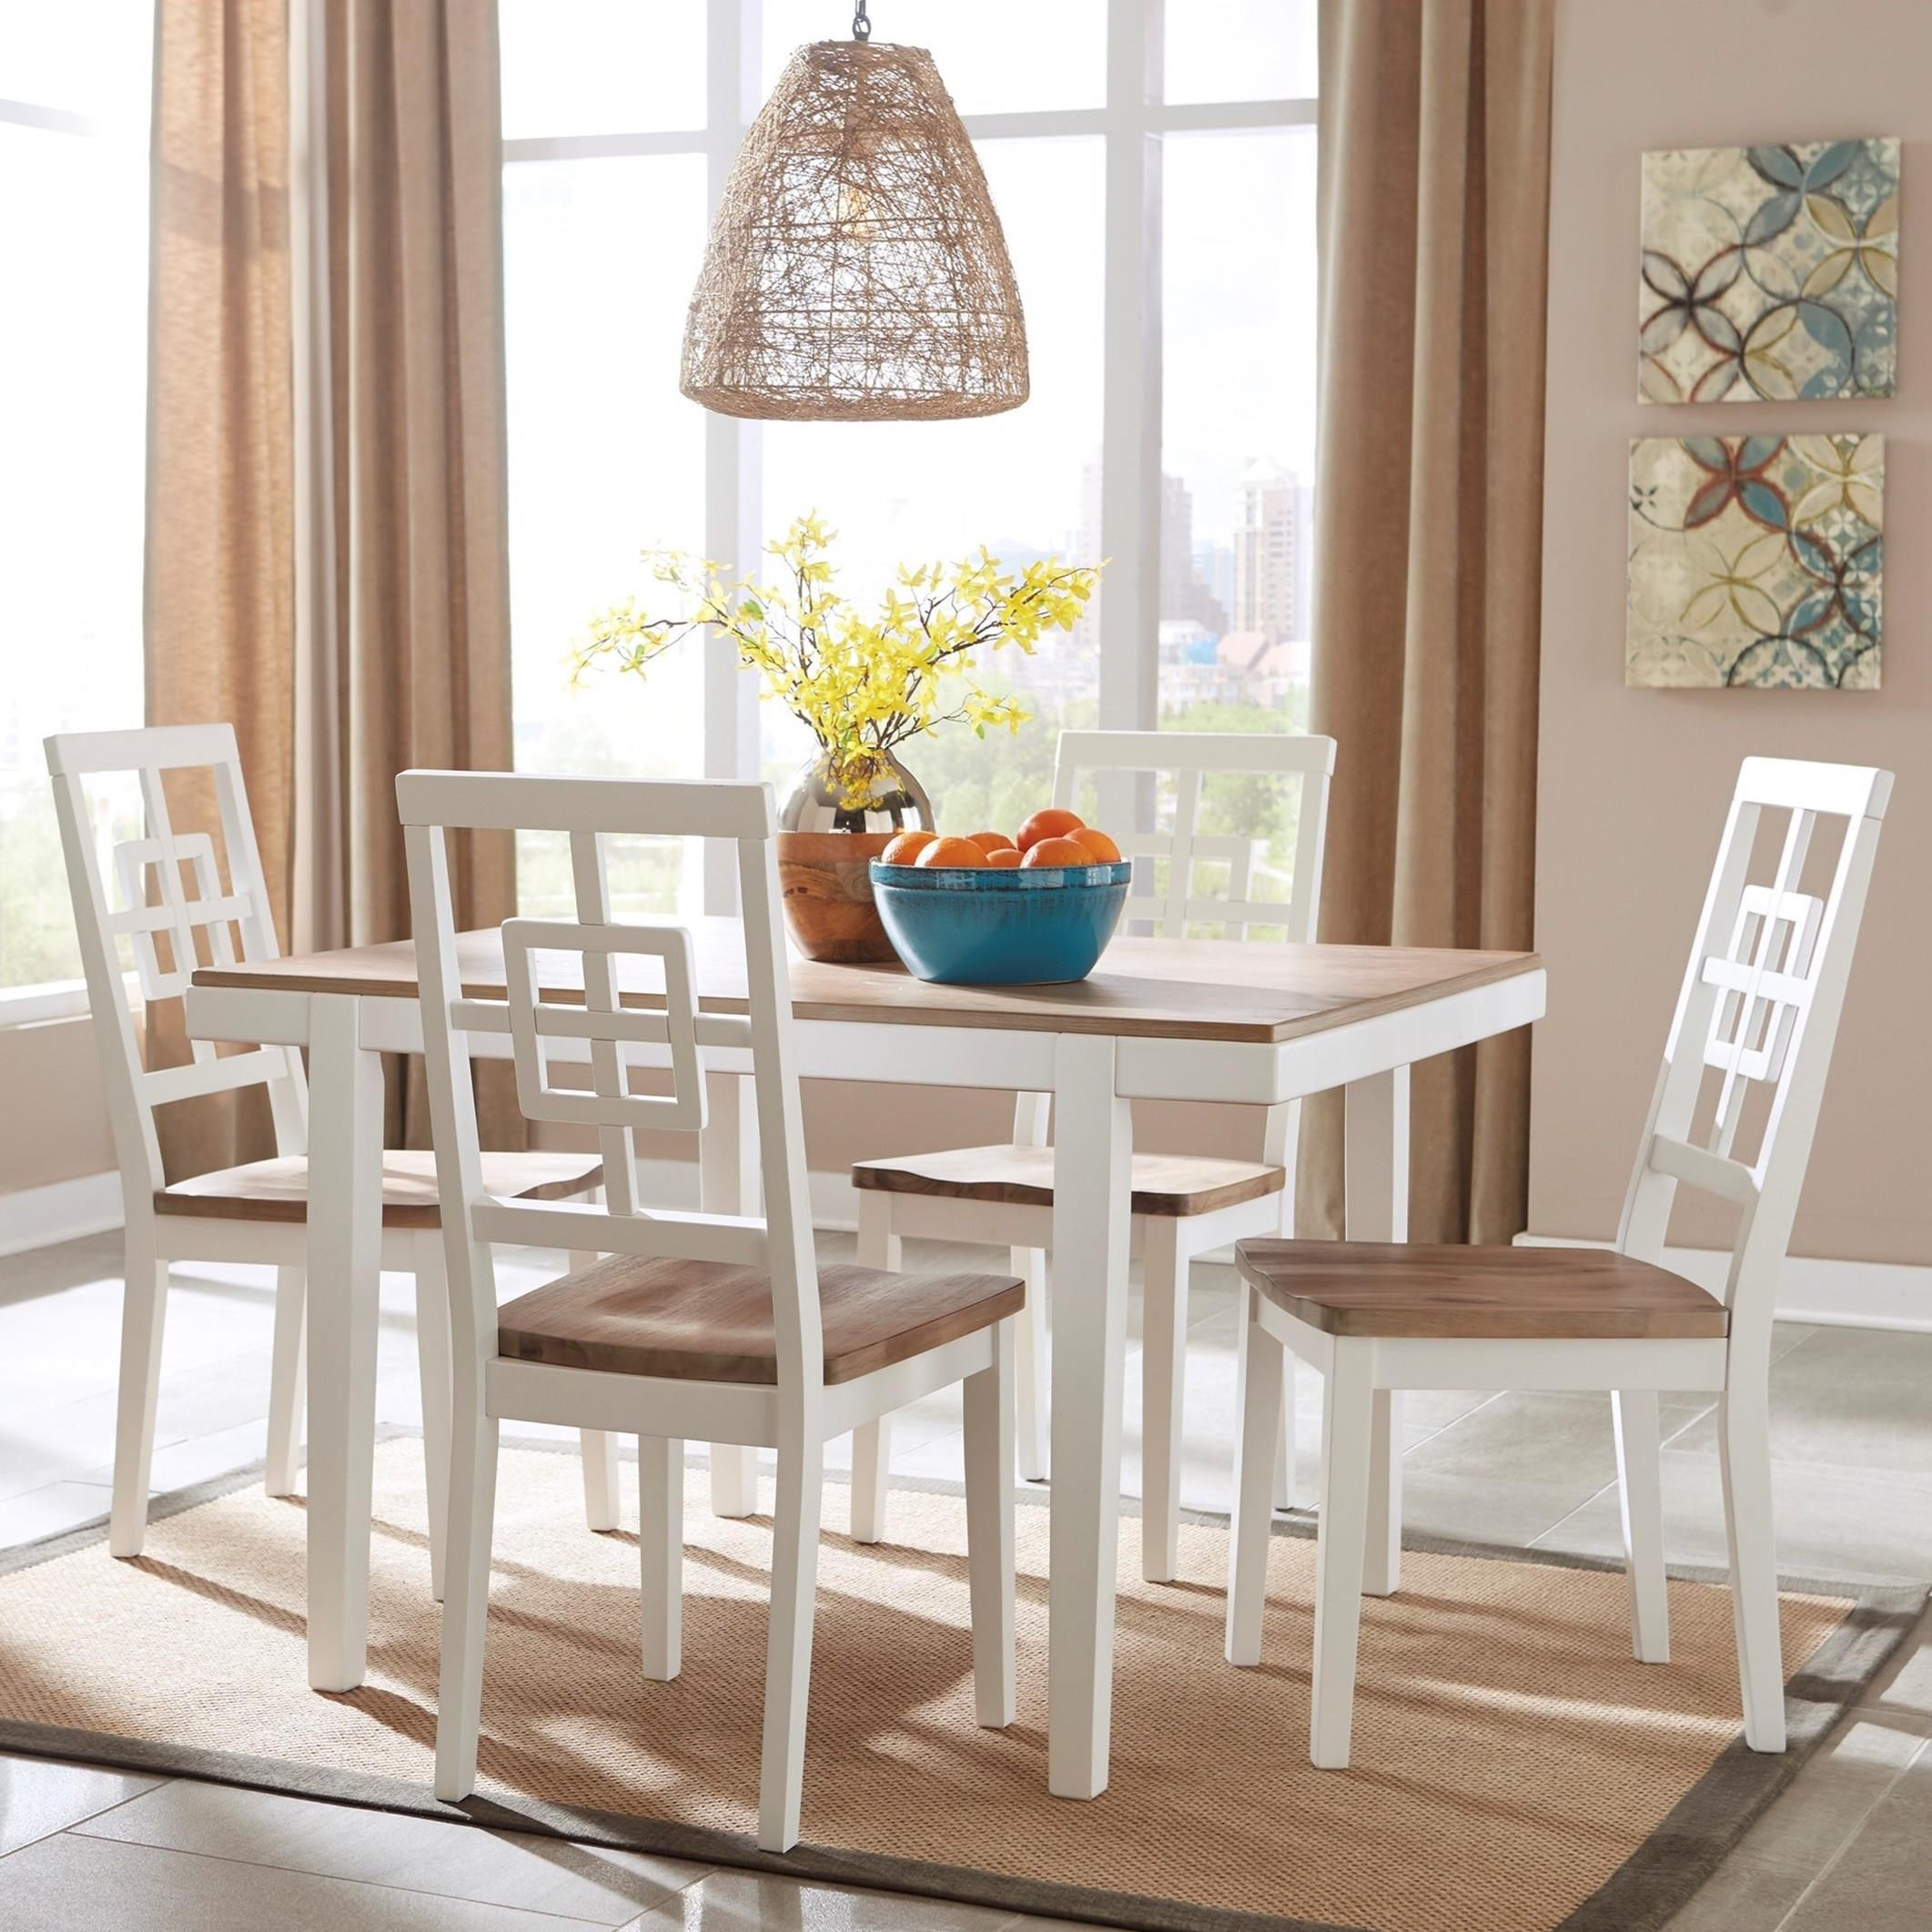 Ashley Furniture Dinette Set: Signature Design By Ashley Brovada Contemporary White